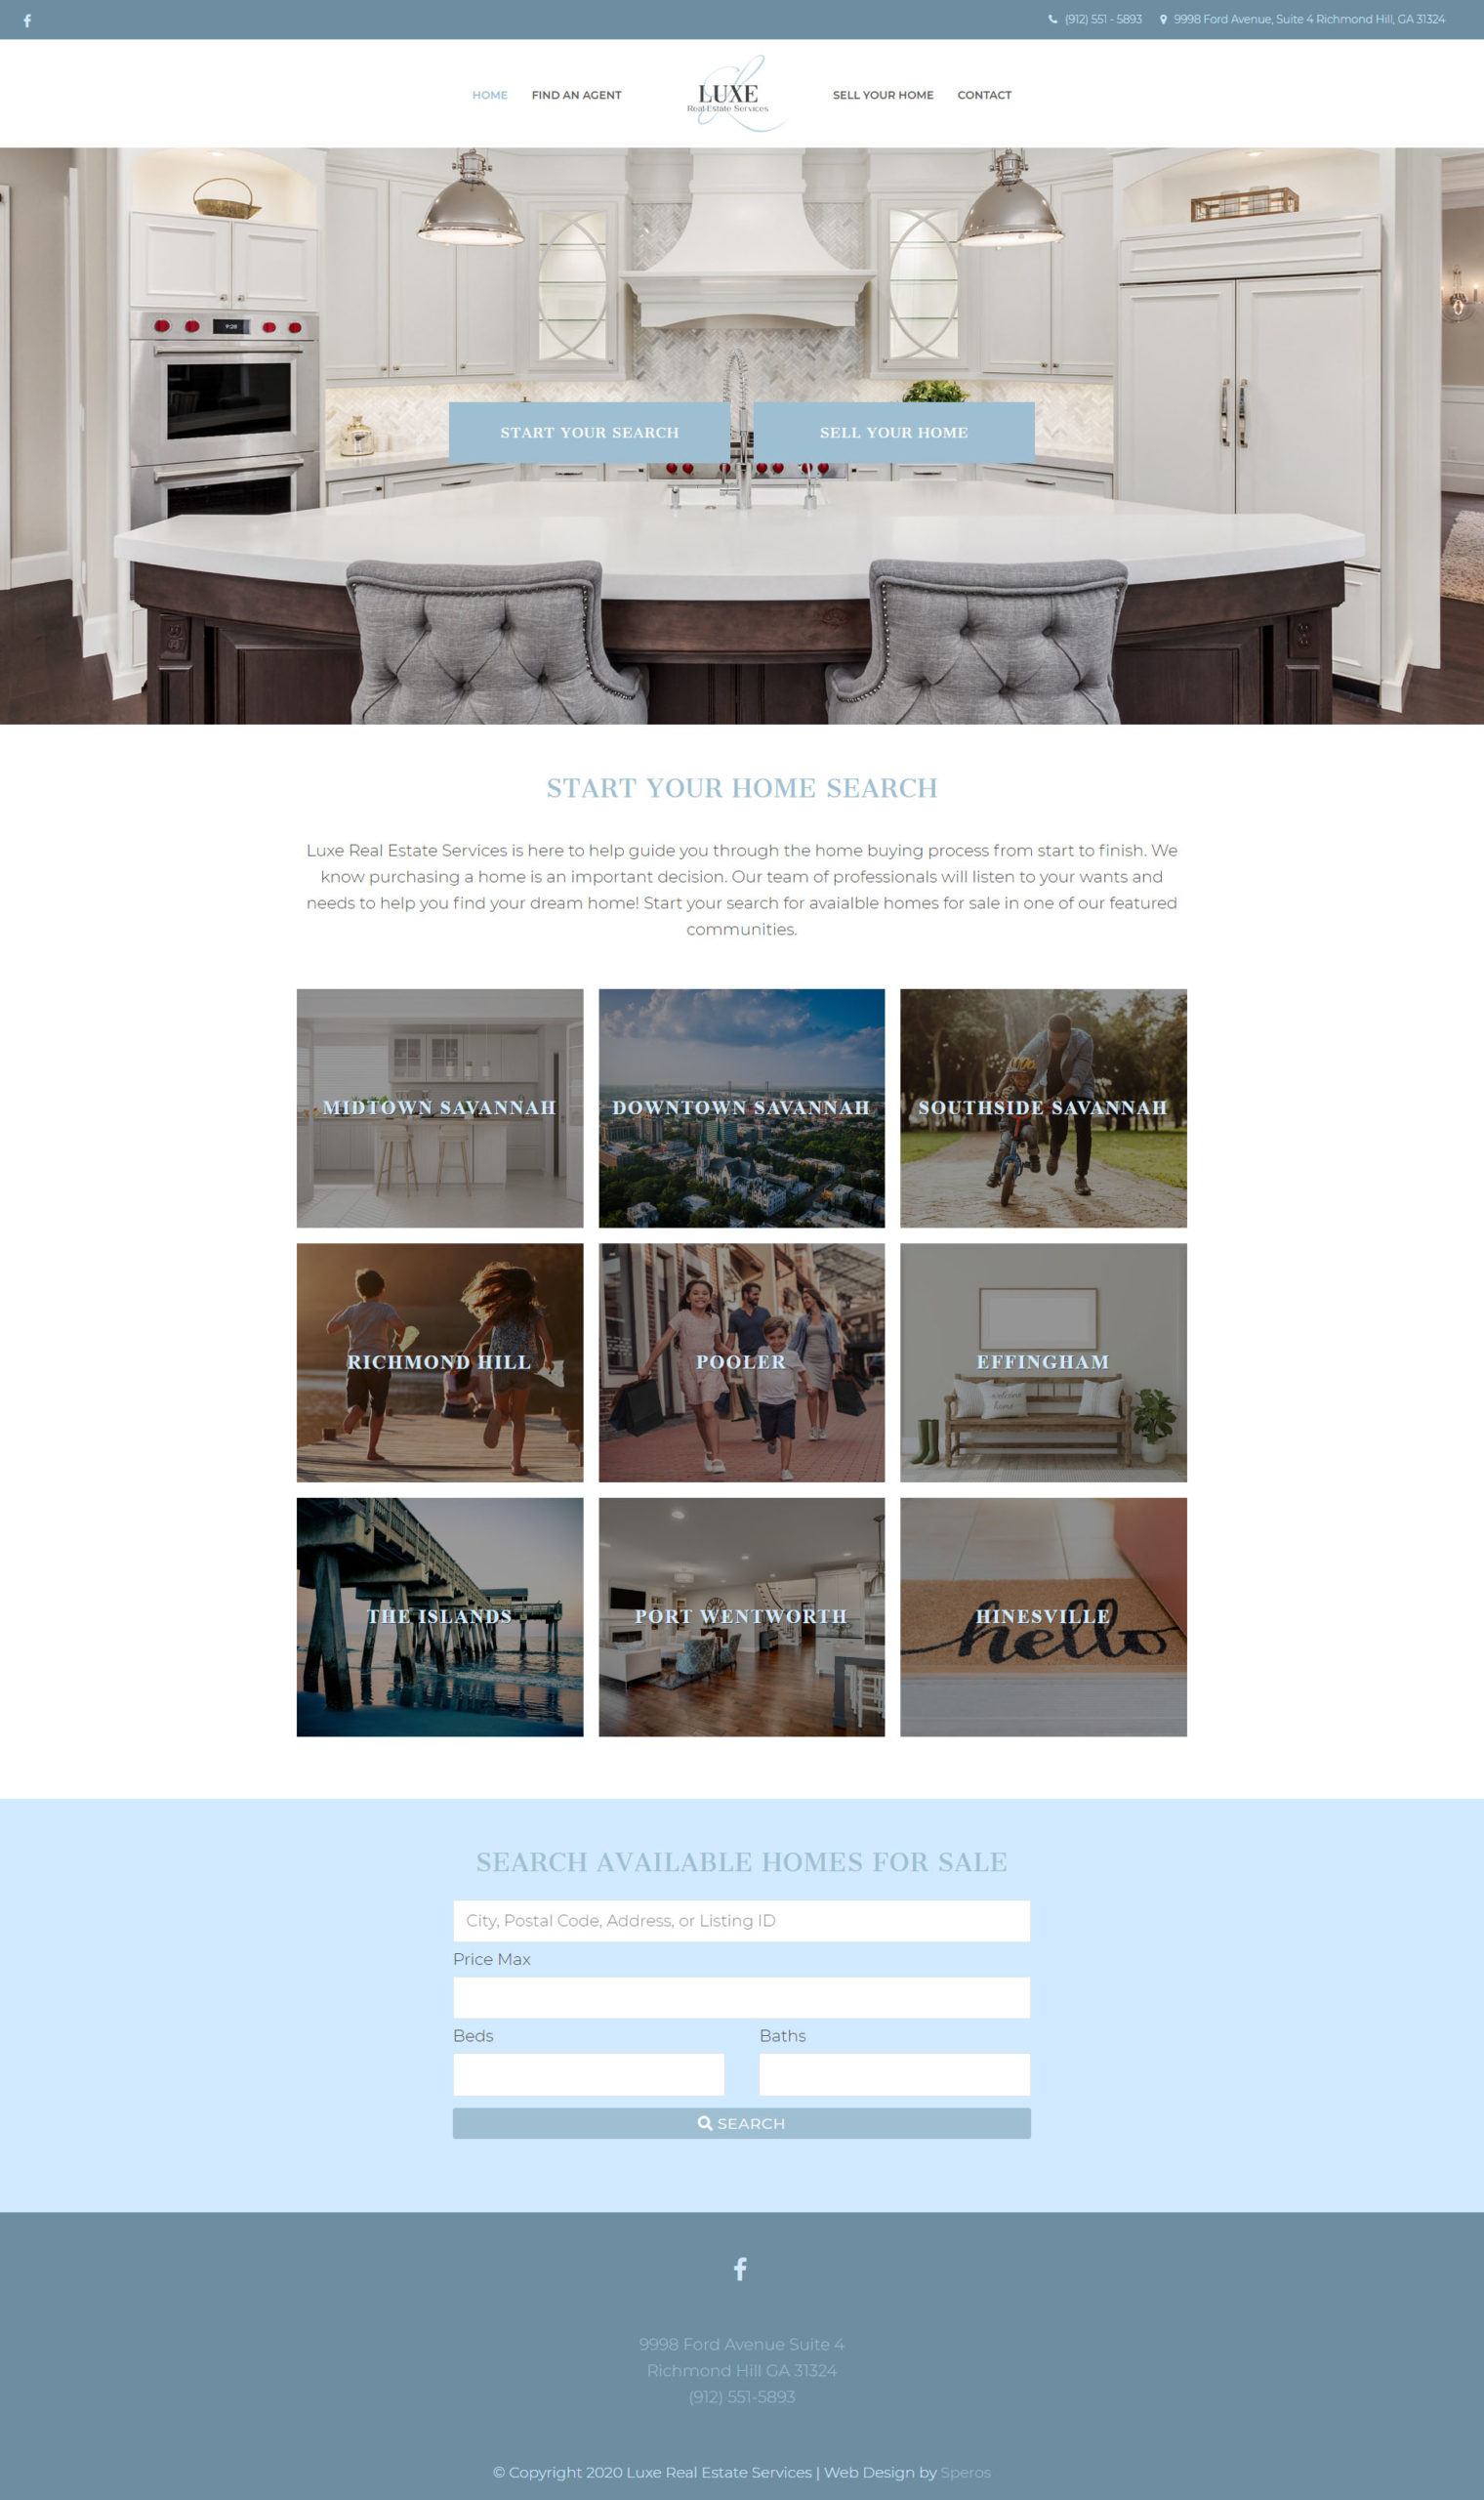 Luxe Real Estate Services homepage - Speros - Savannah, GA